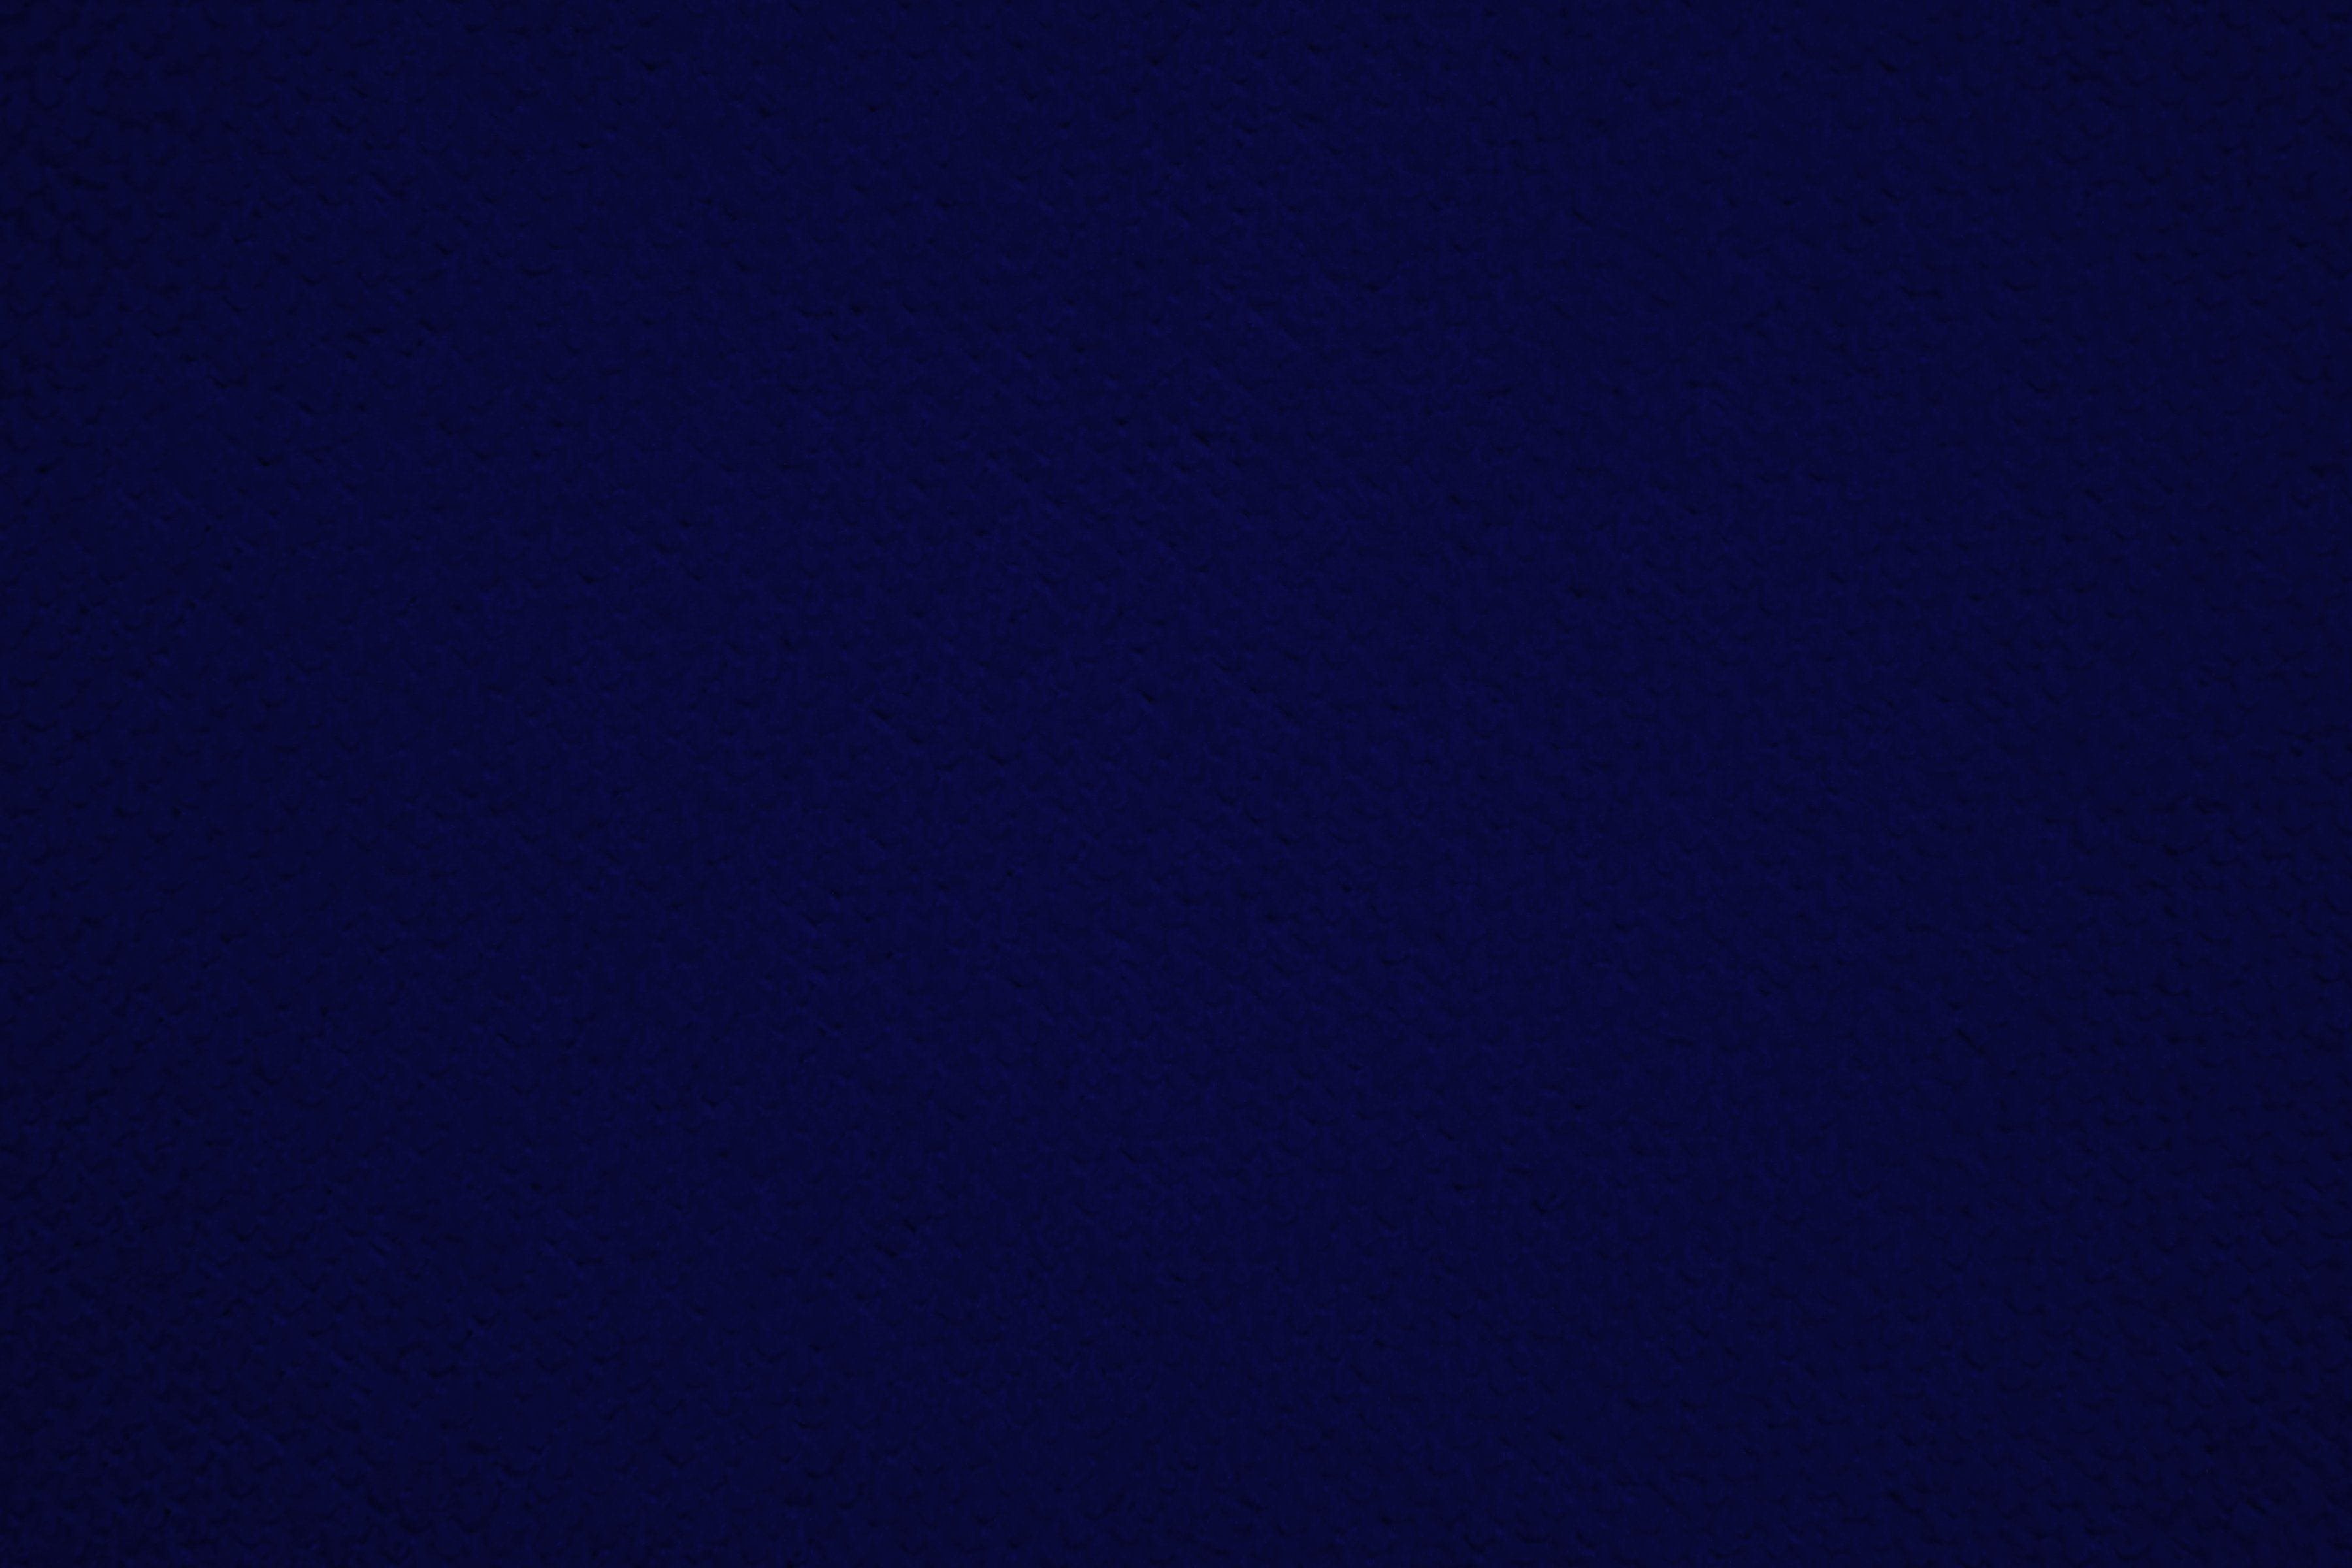 Dark Blue Color Wallpapers